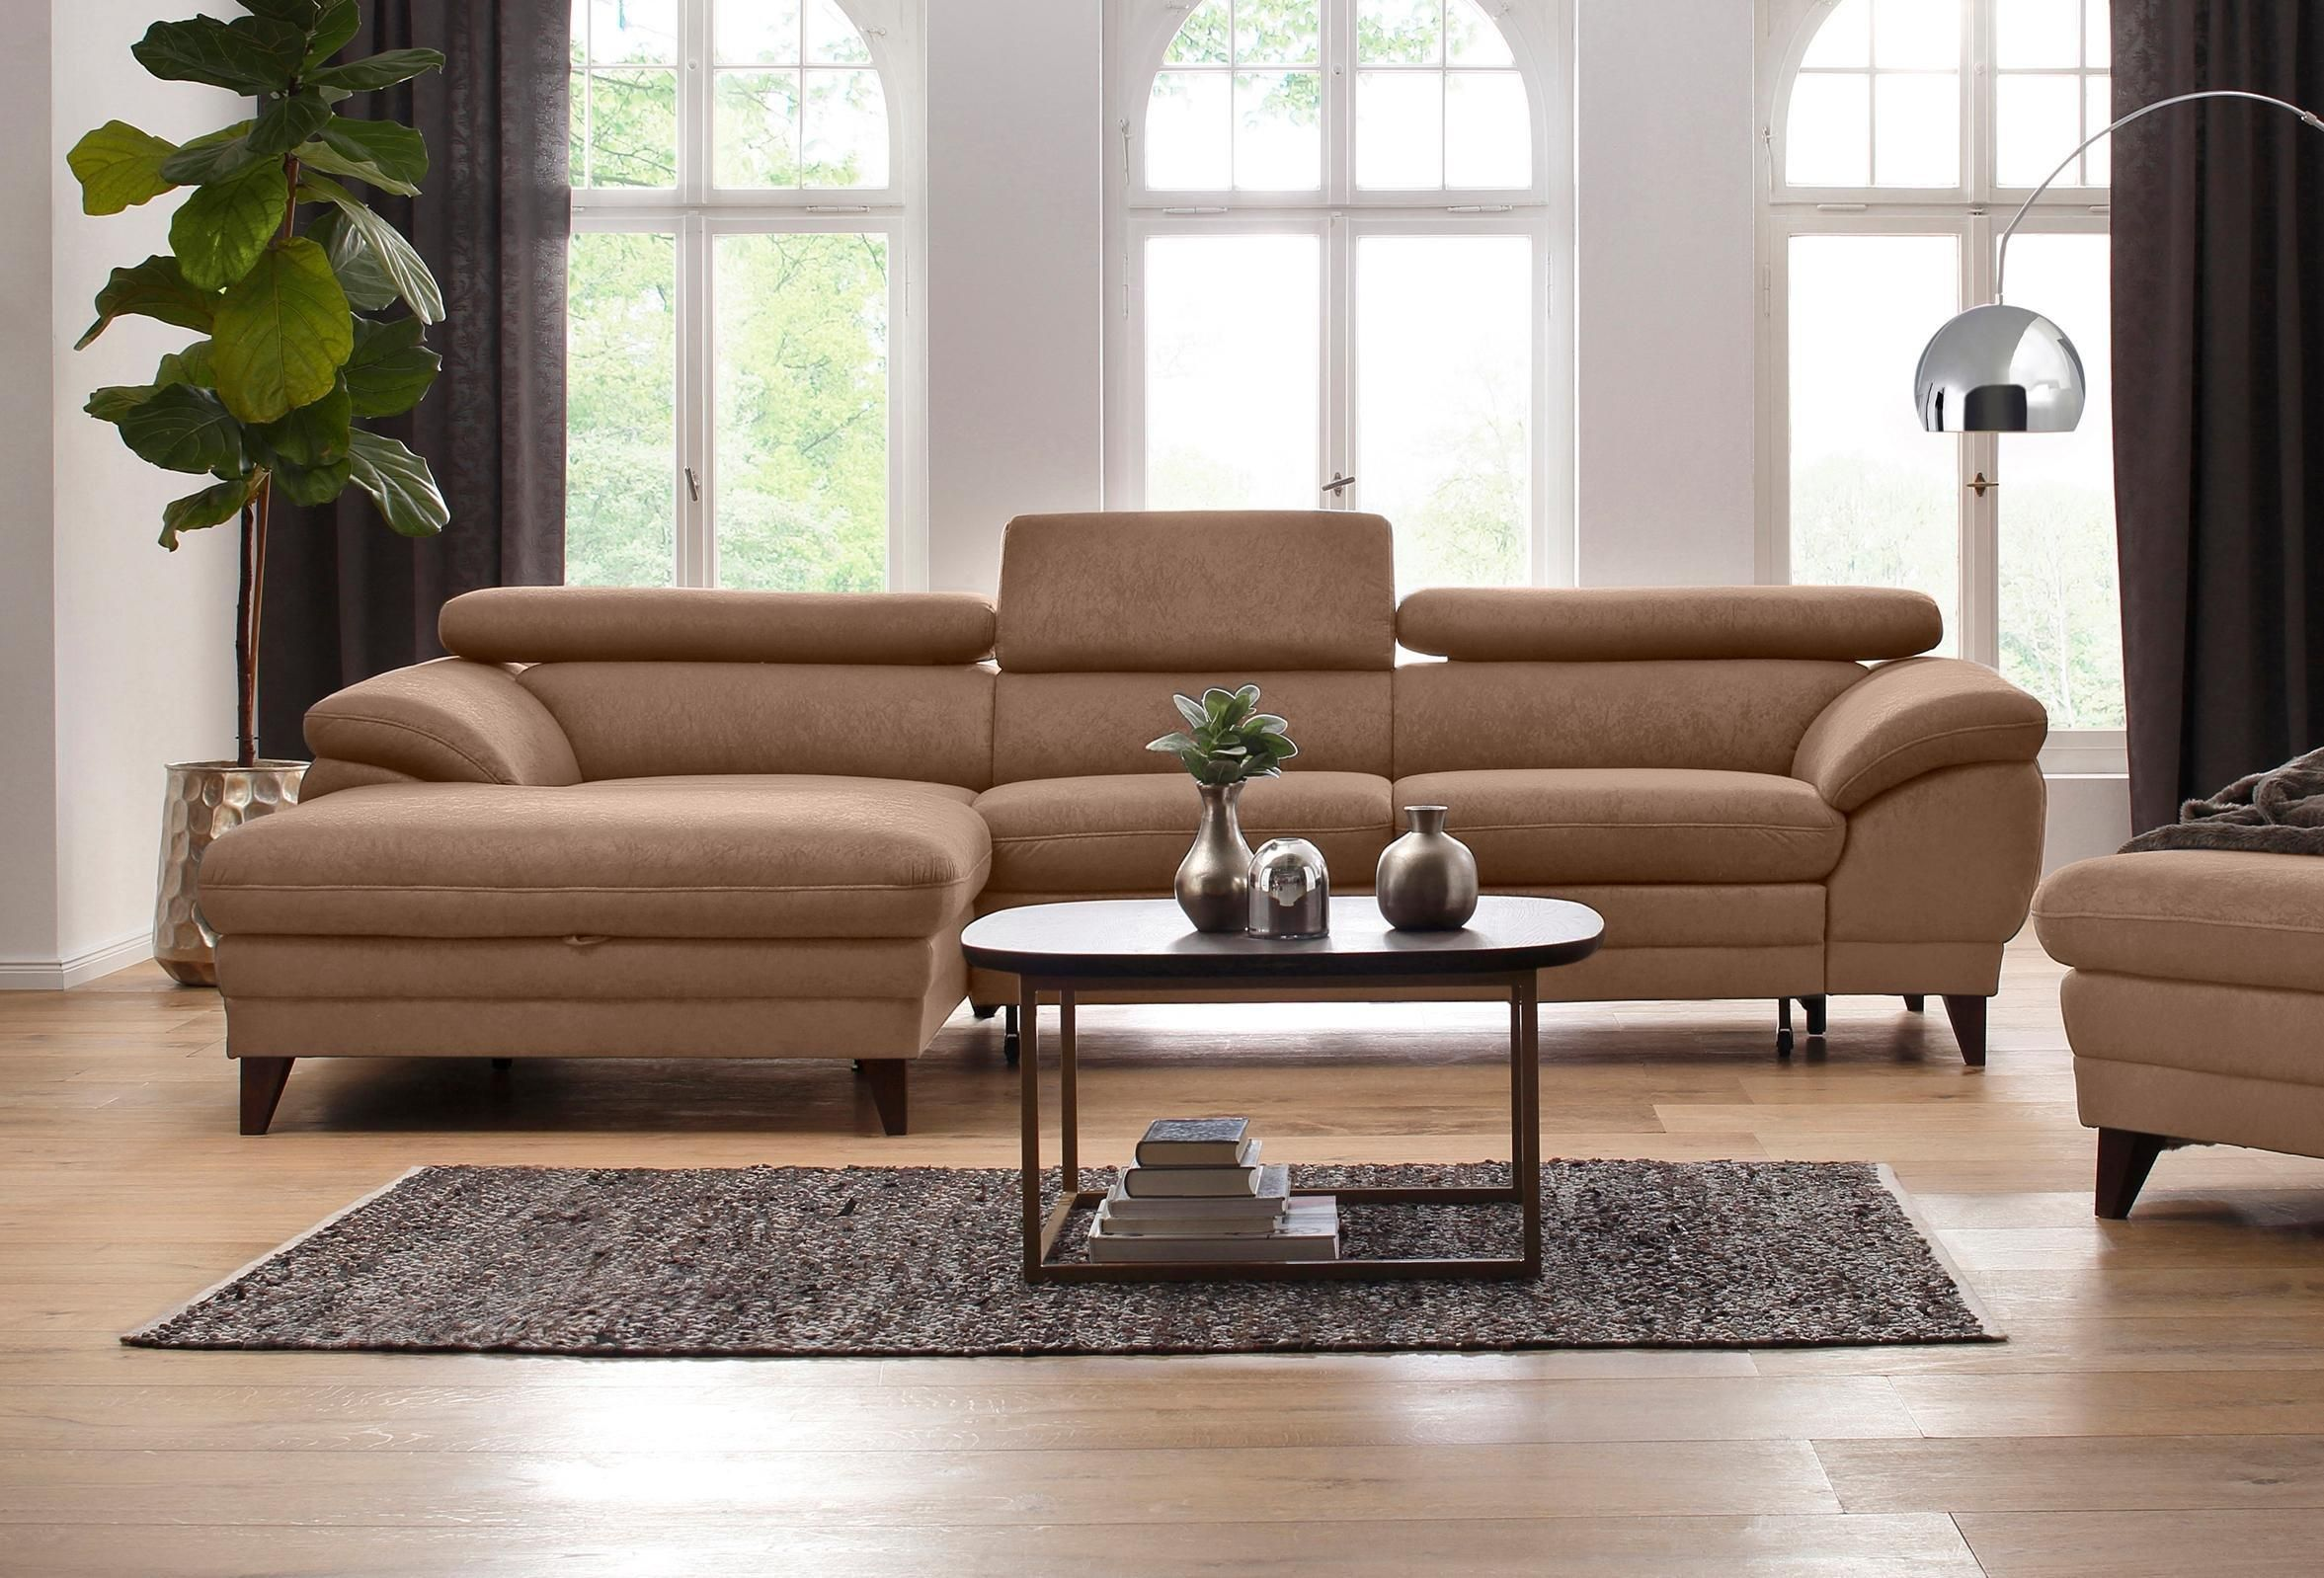 Ecksofa Bestellen Home Affaire Ecksofa Shally In 2019 Sofas Sofa Couch Und